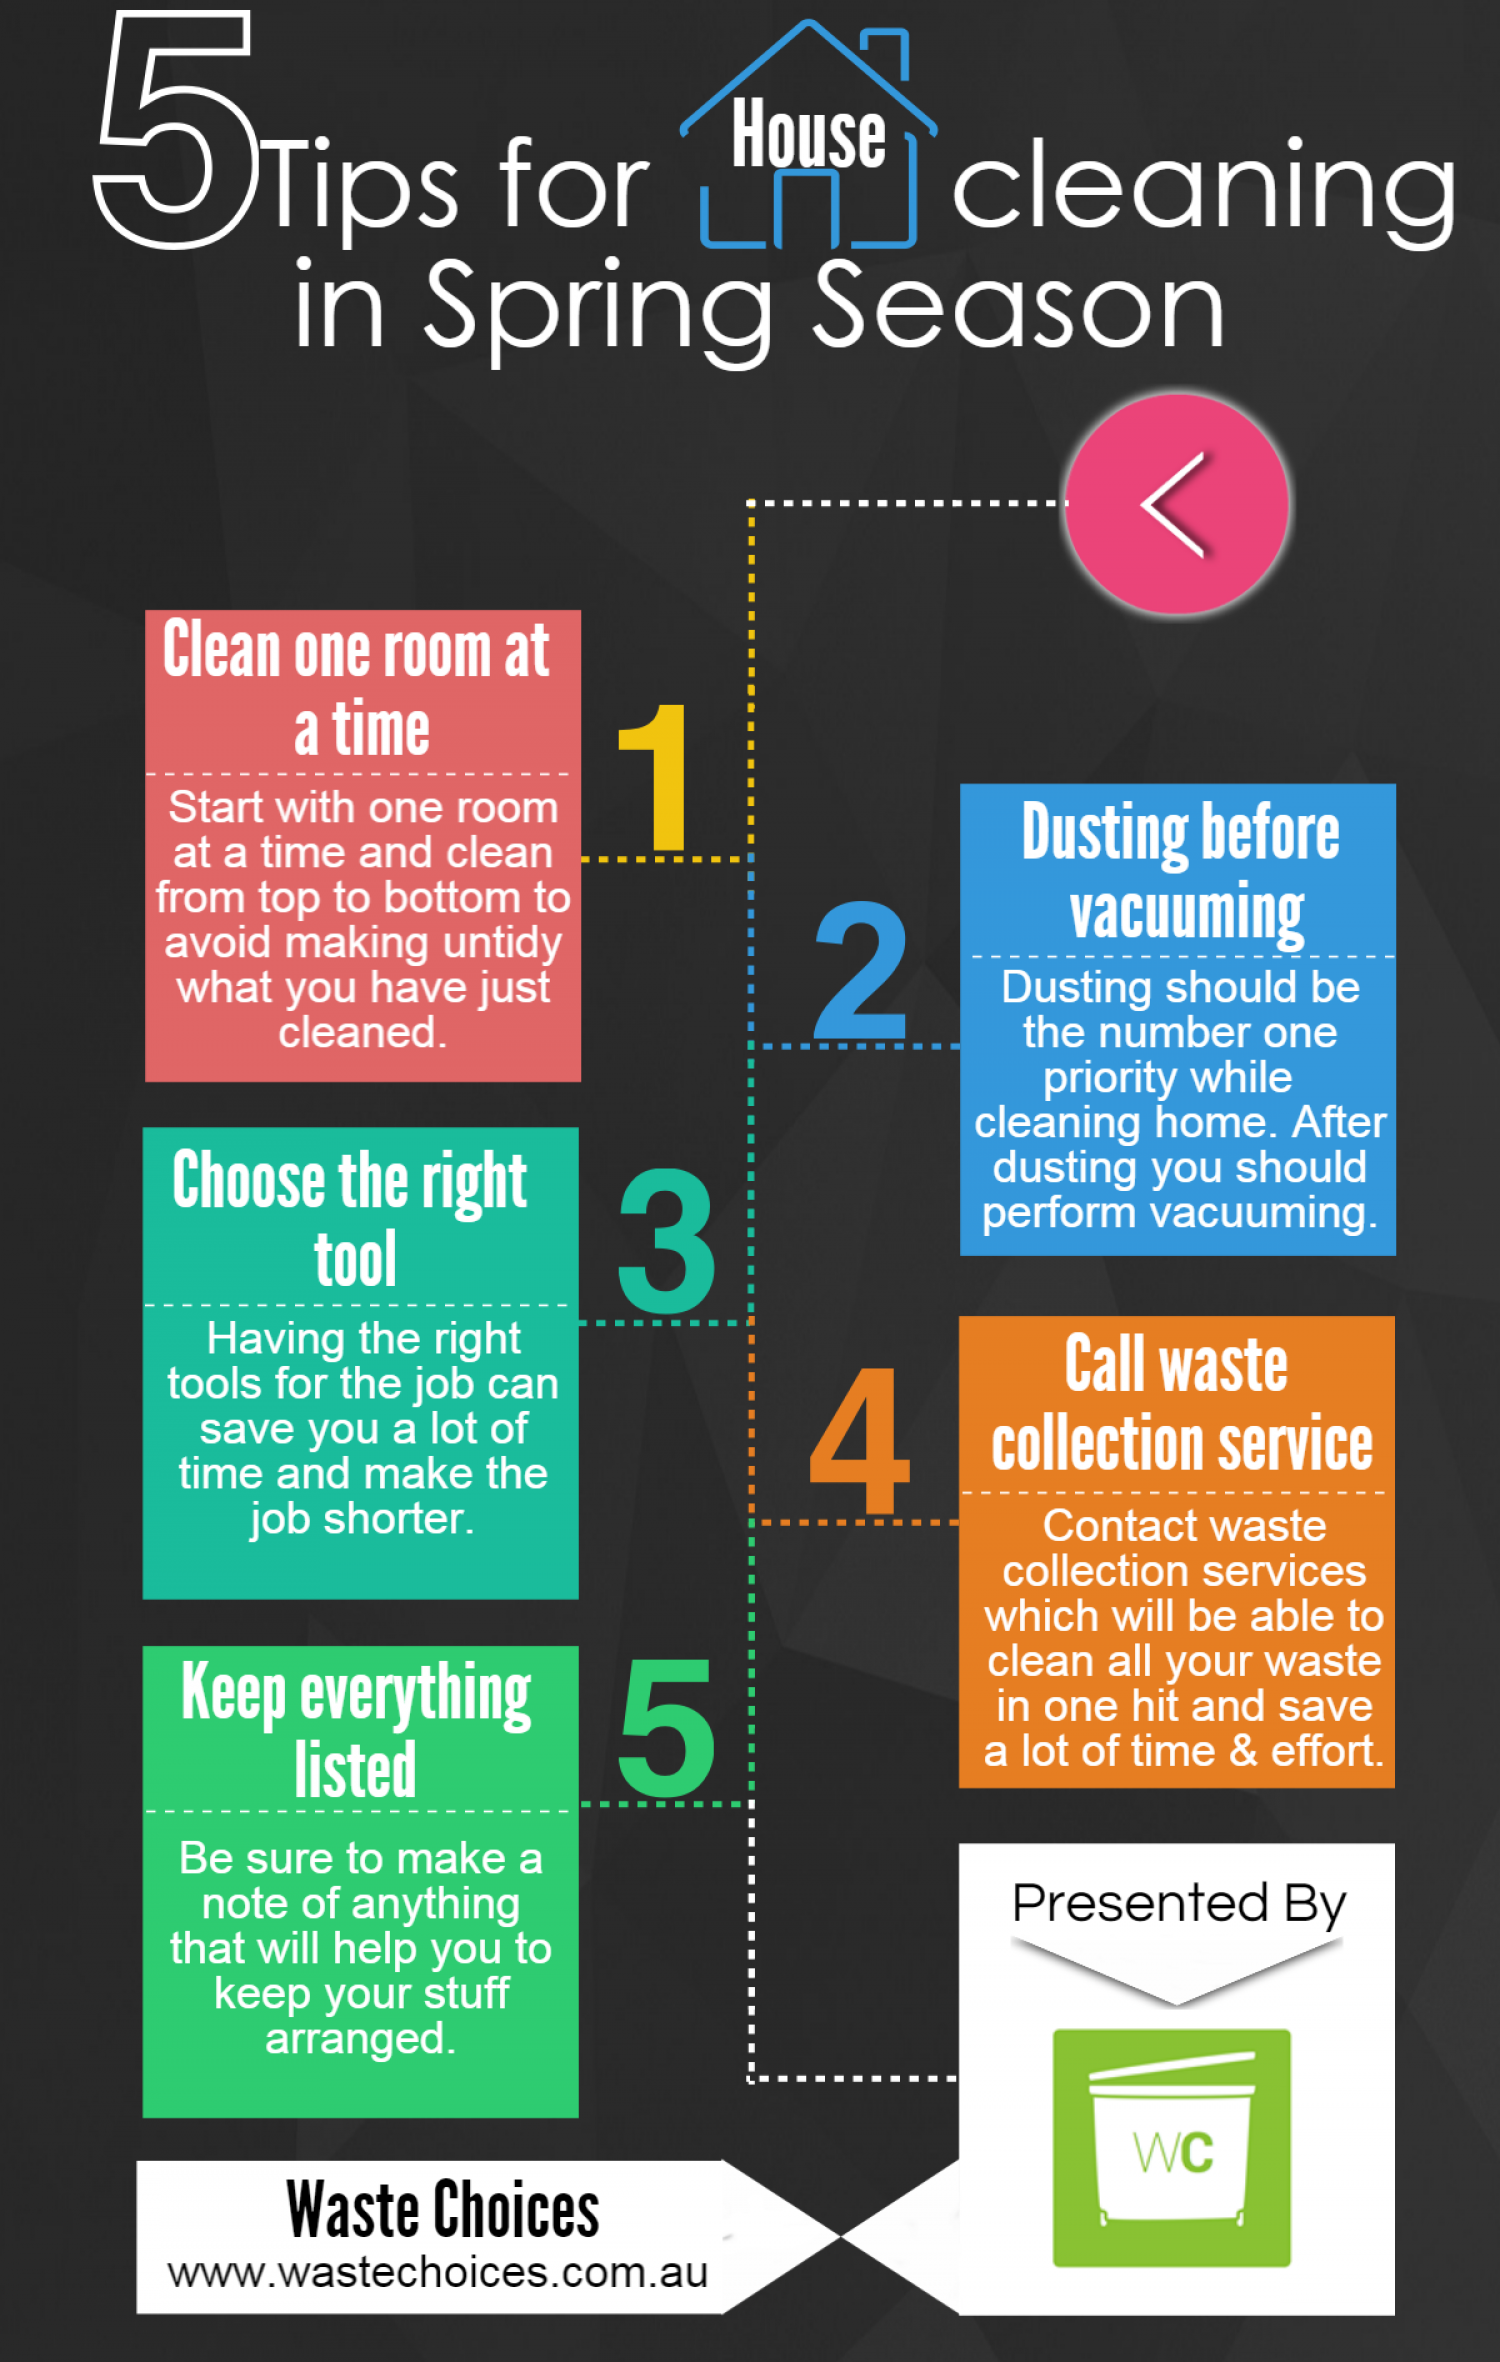 Tips for House Cleaning in Spring Season Infographic